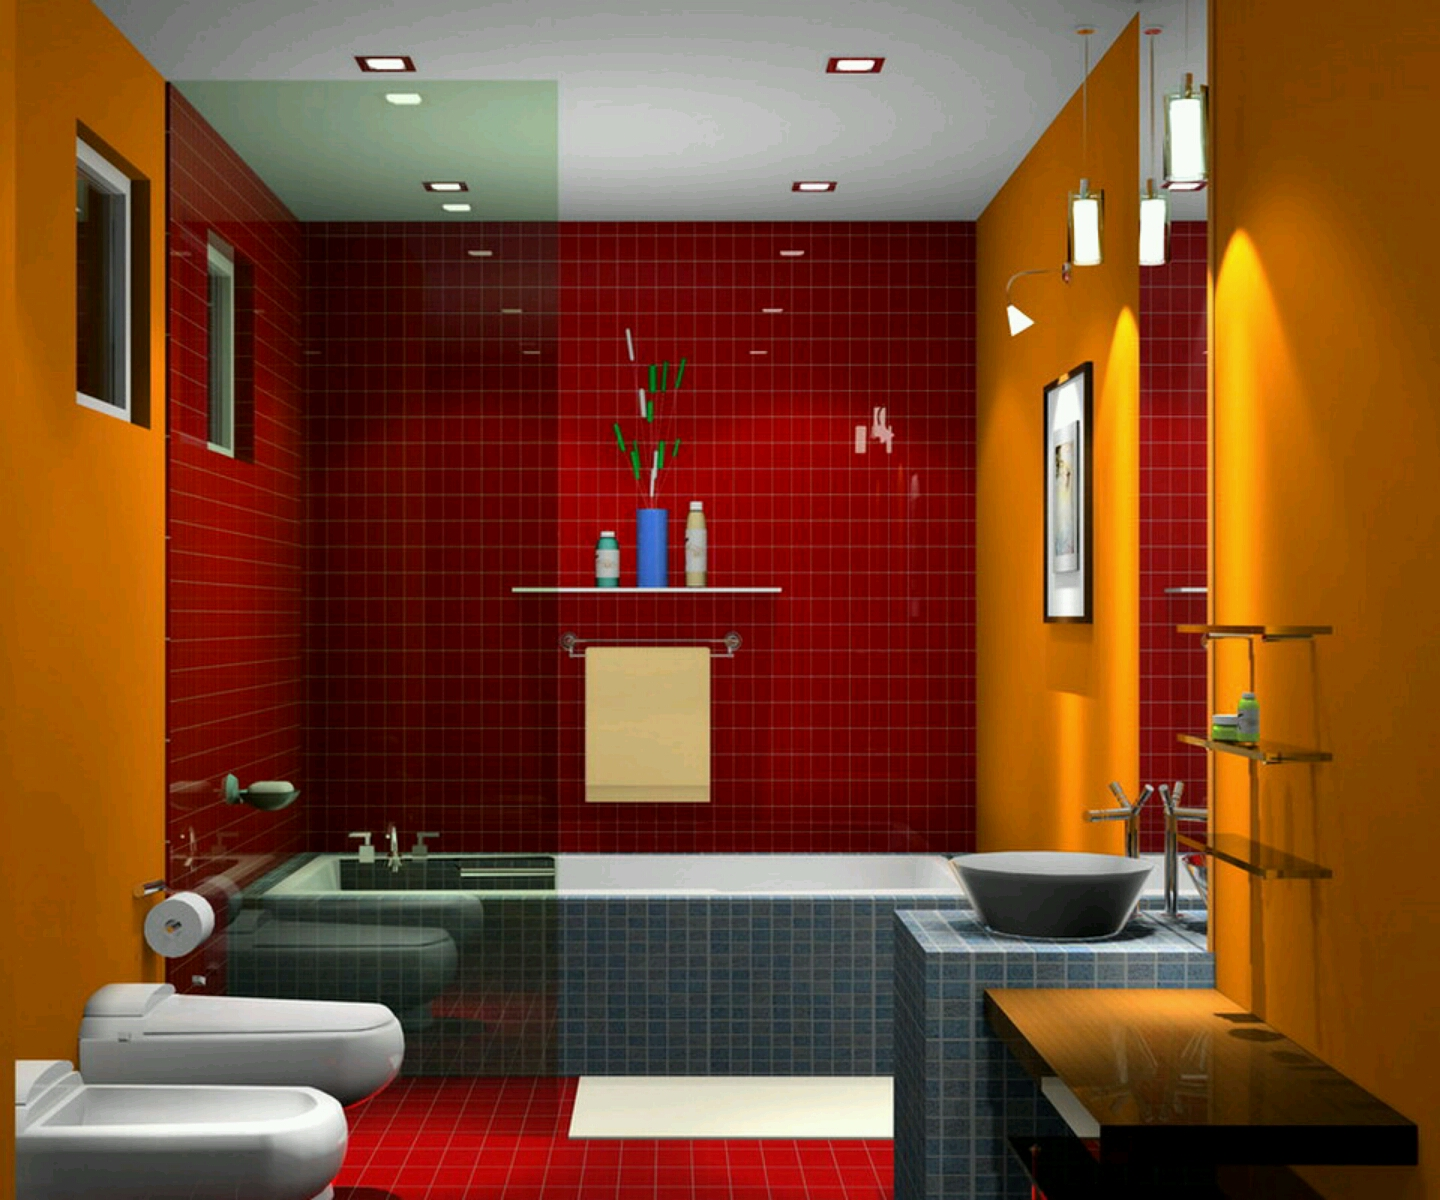 New home designs latest luxury bathrooms designs ideas for New latest bathroom designs